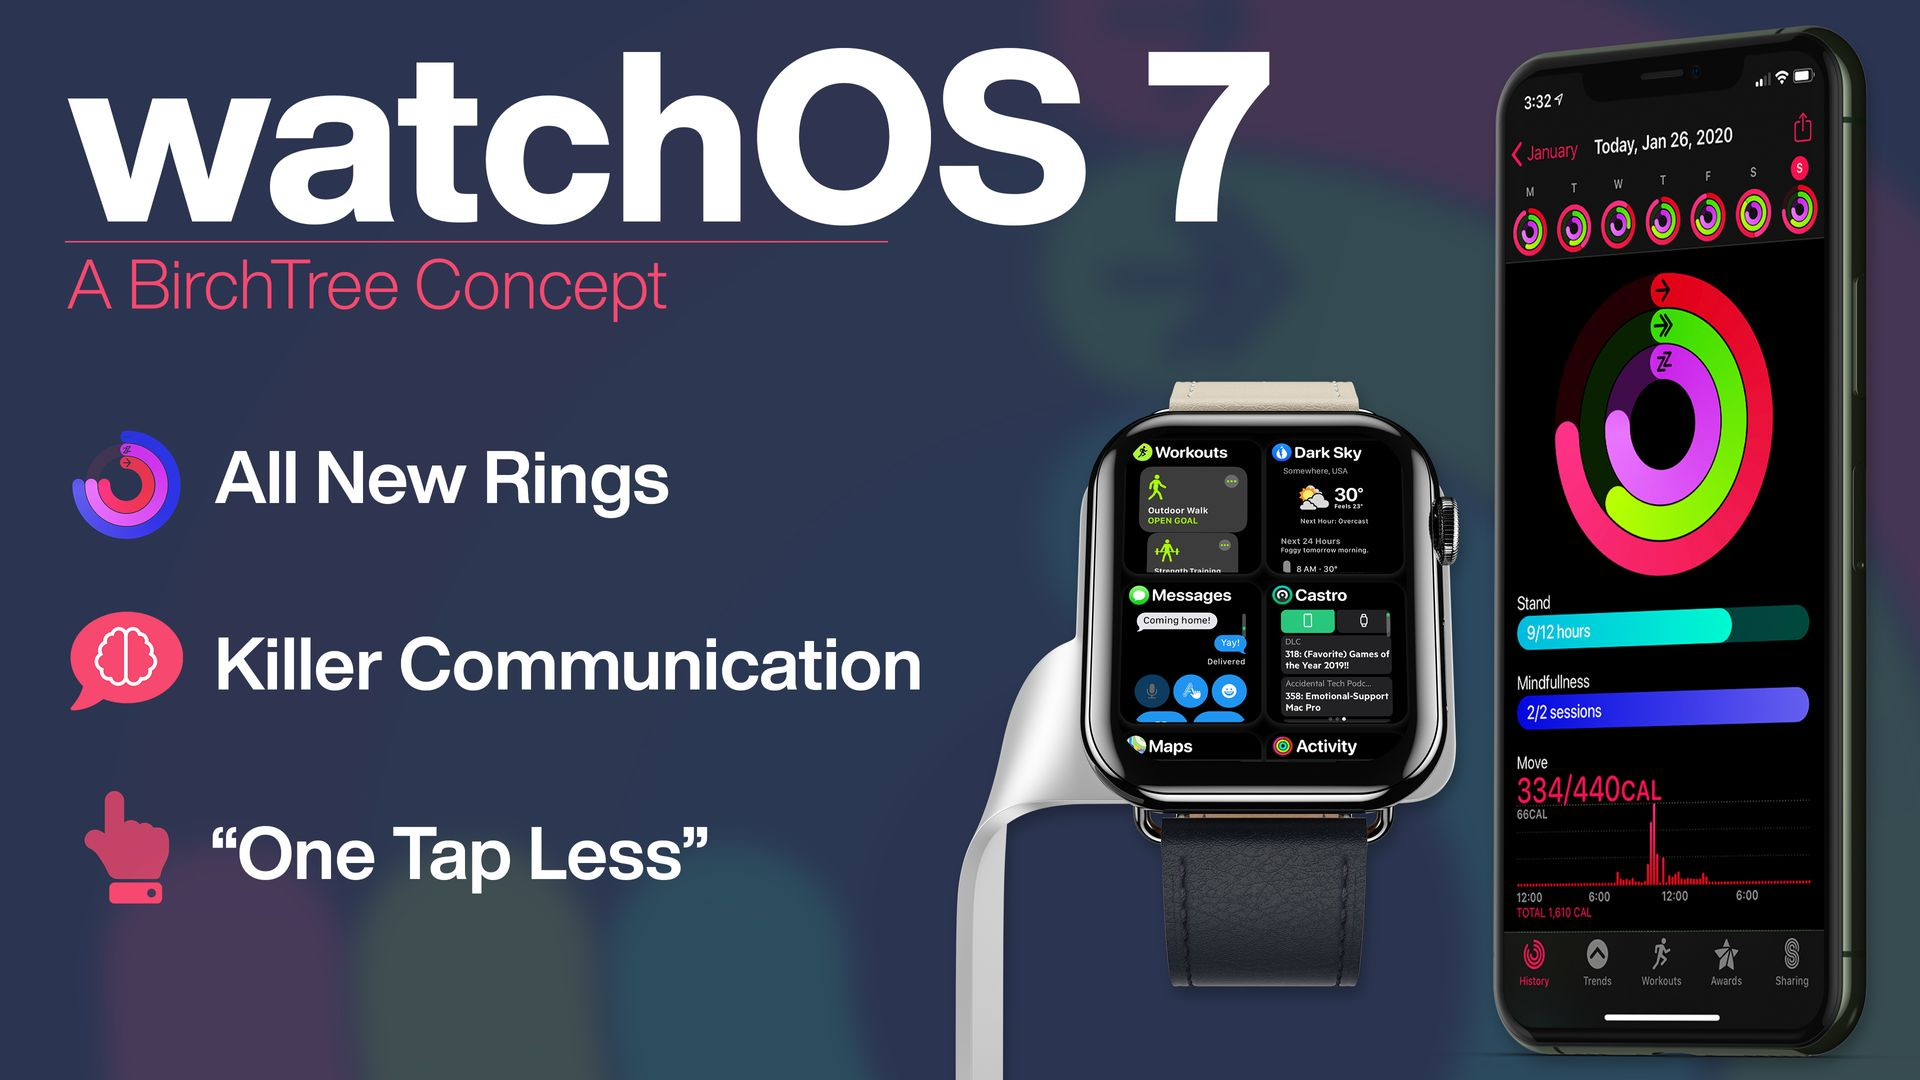 watchOS 7: A BirchTree Concept